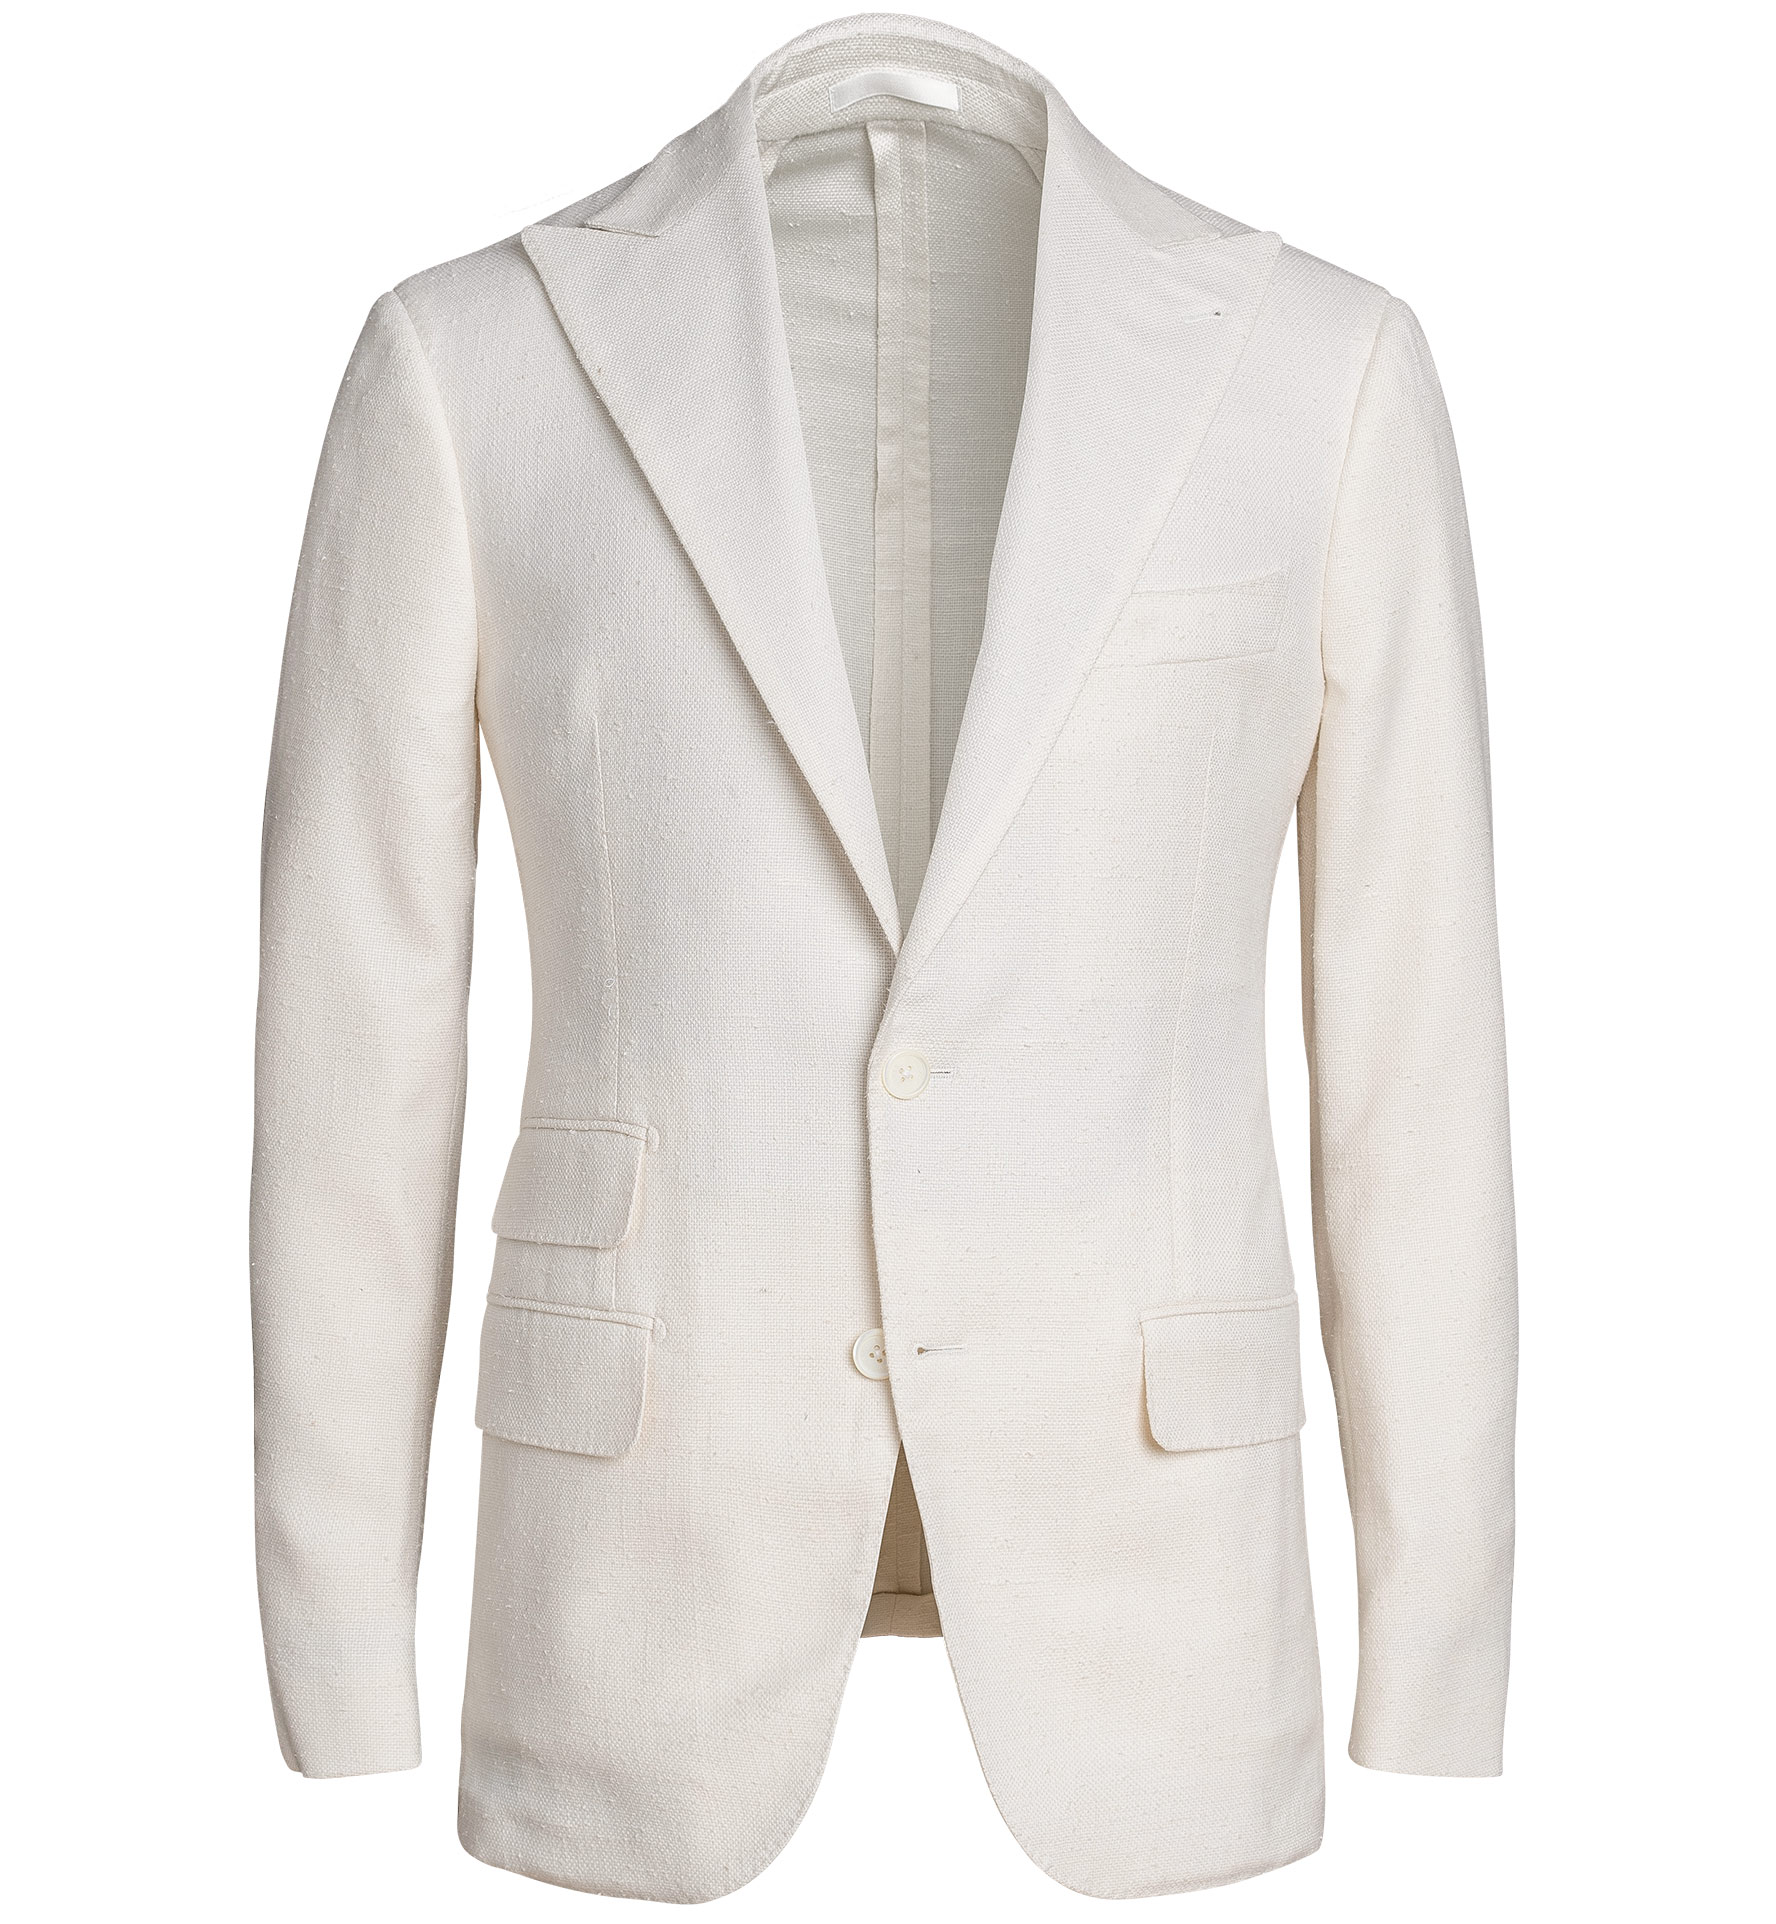 Zoom Image of Mayfair Cream Silk and Wool Slub Weave Dinner Jacket